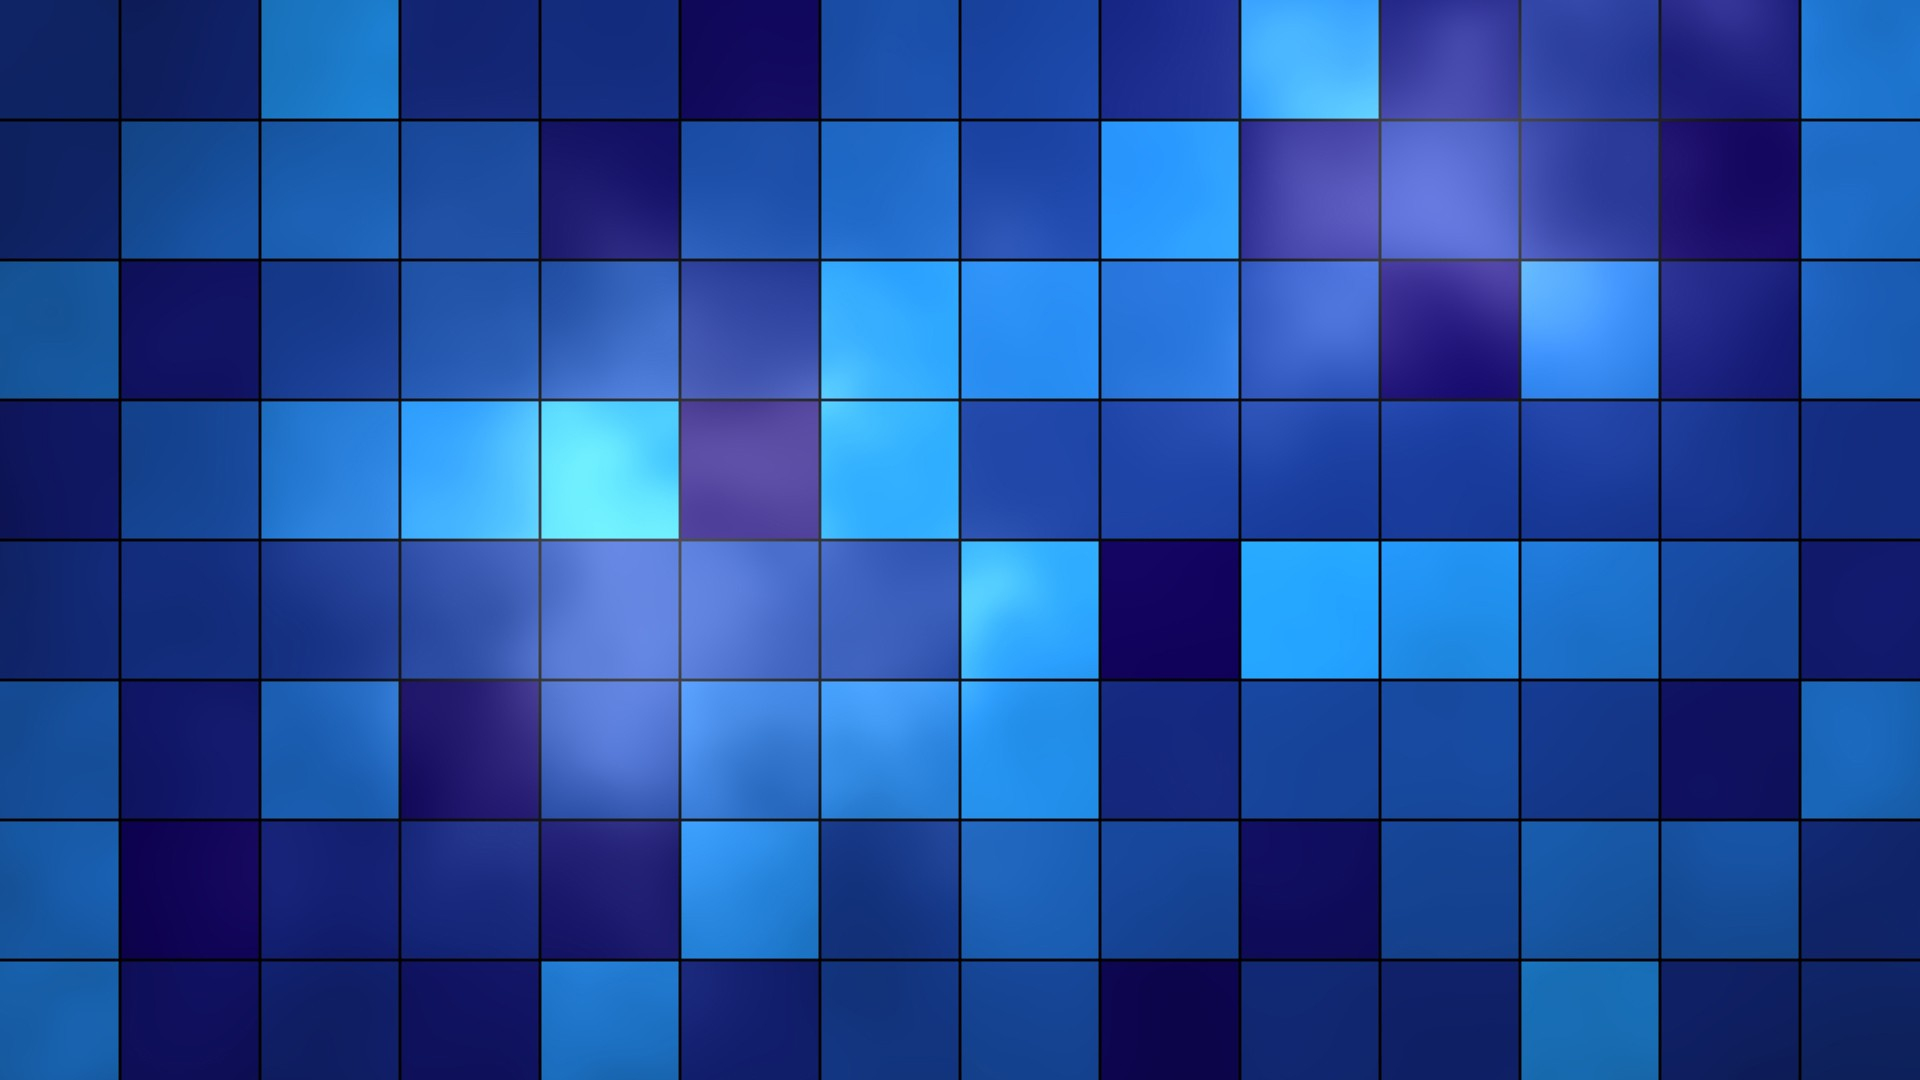 ... blue wallpaper 21 ...